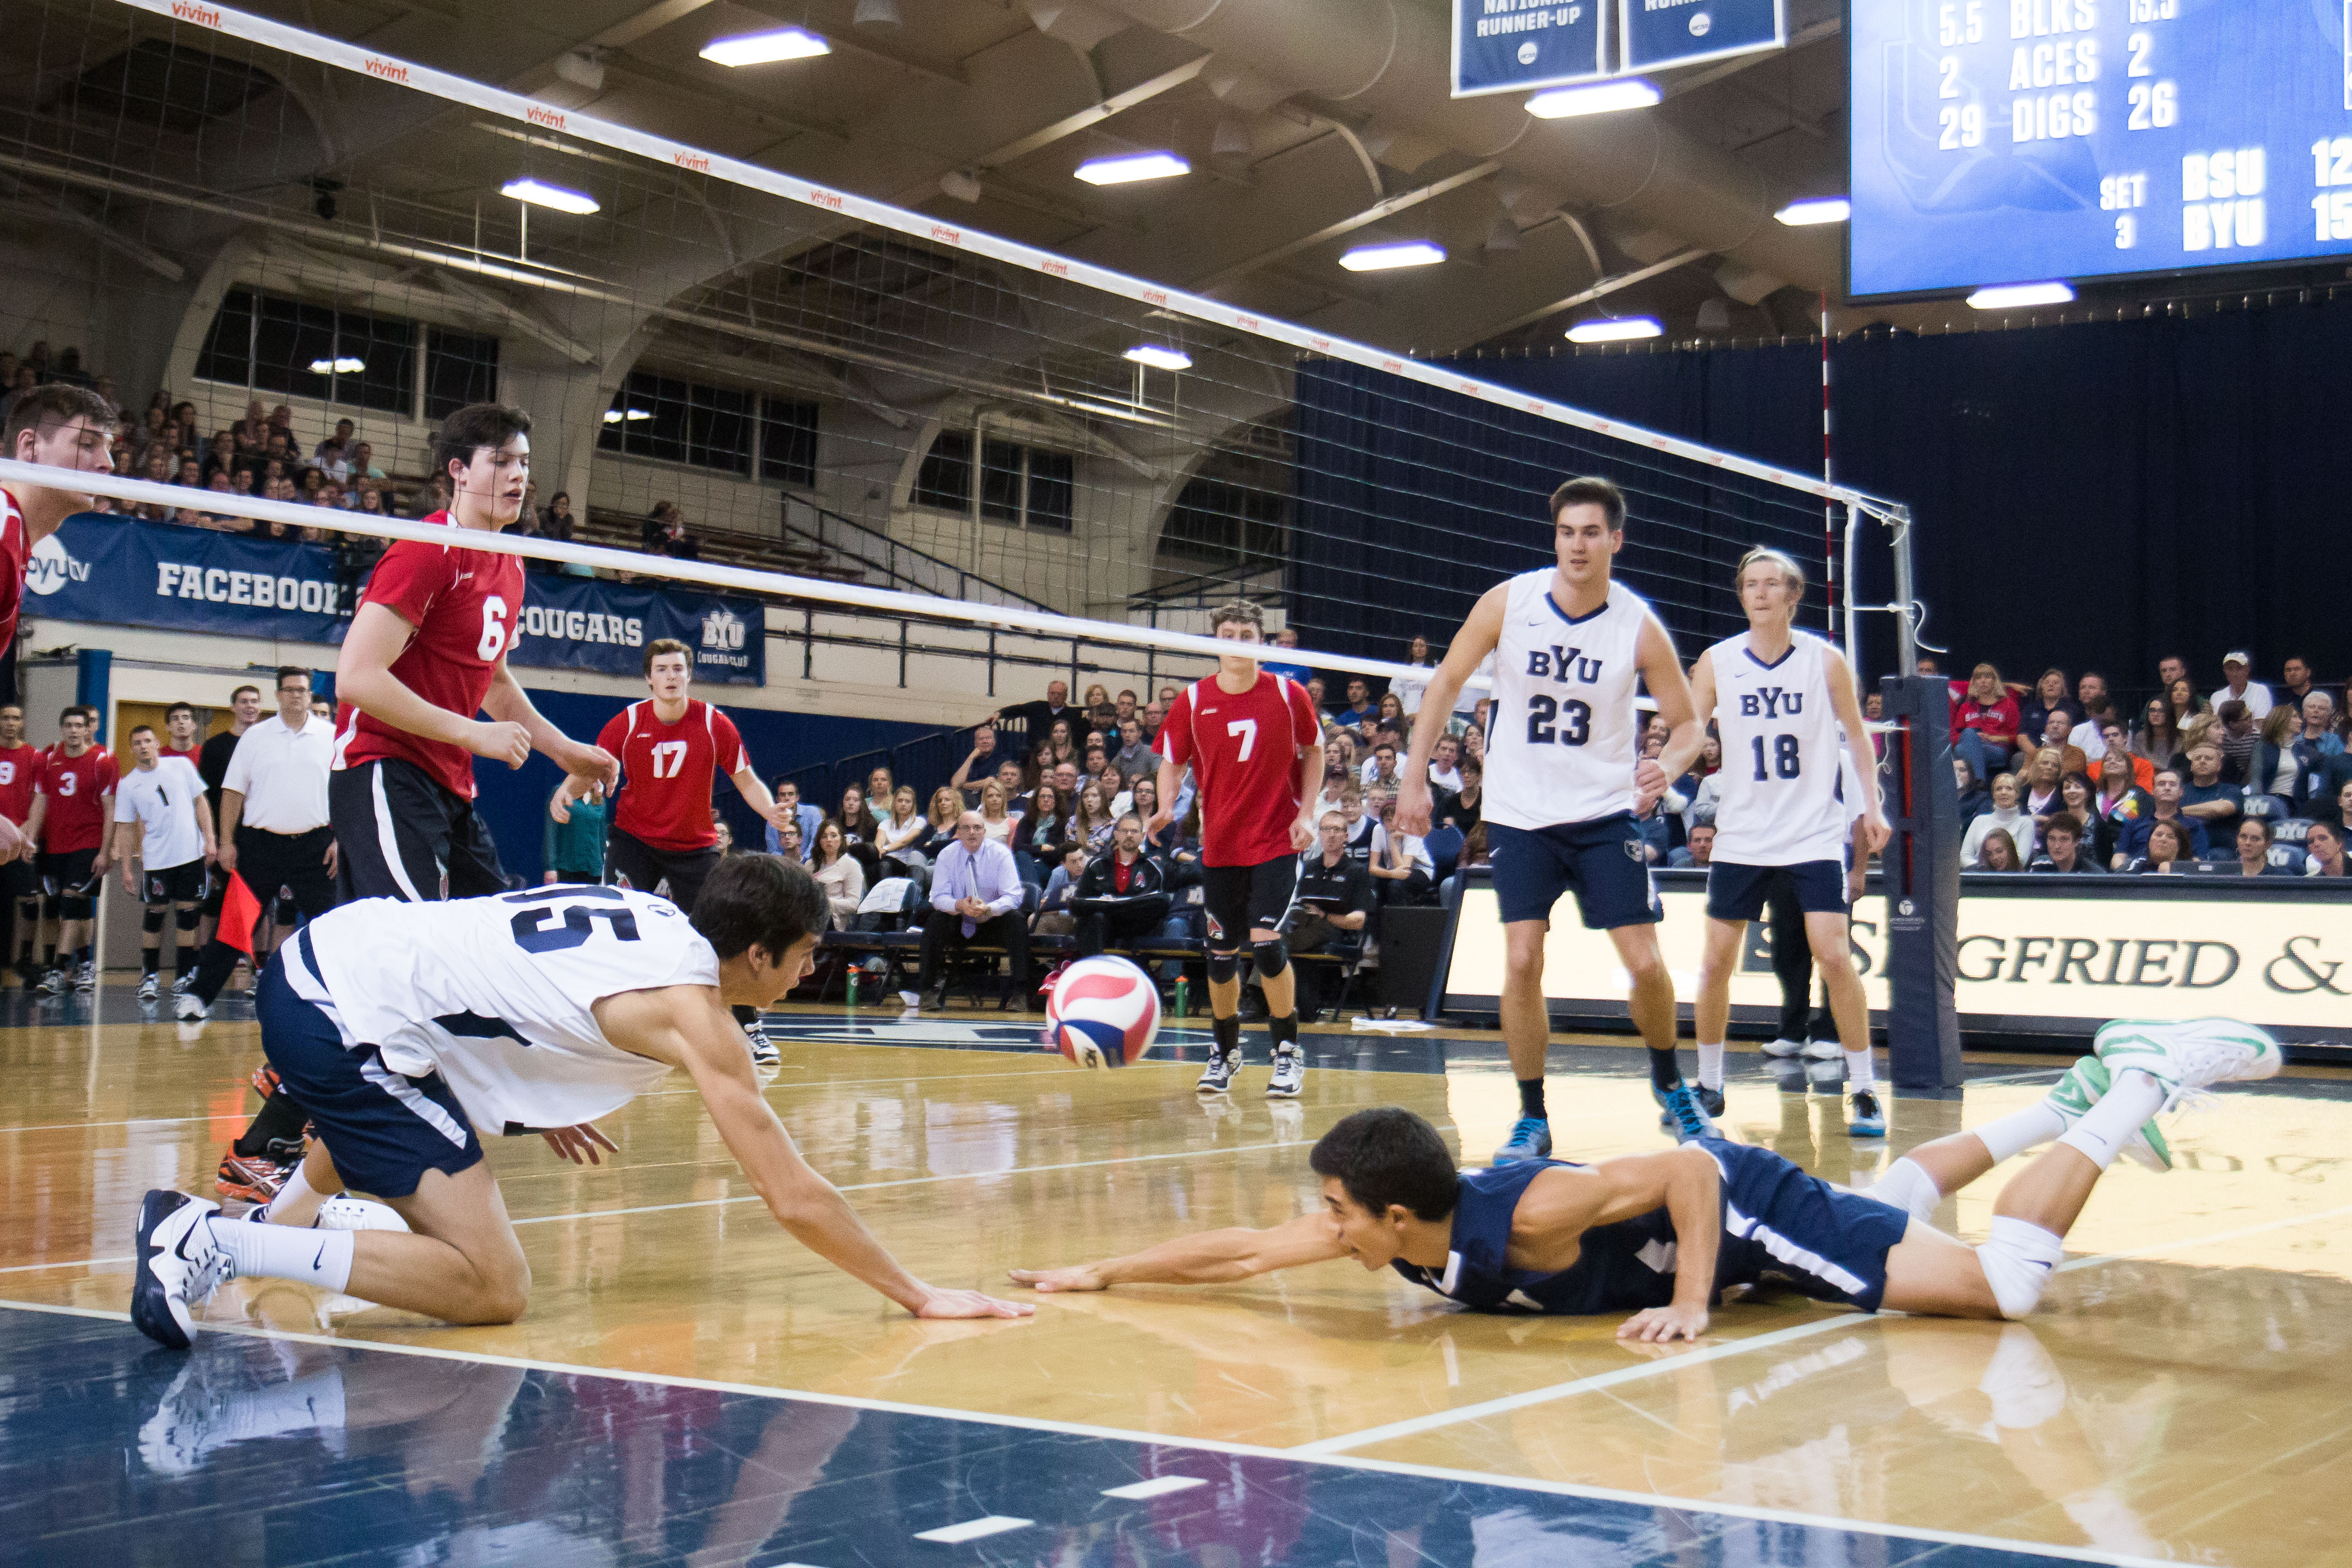 Byu Men S Volleyball Loses To Unranked Stanford The Daily Universe